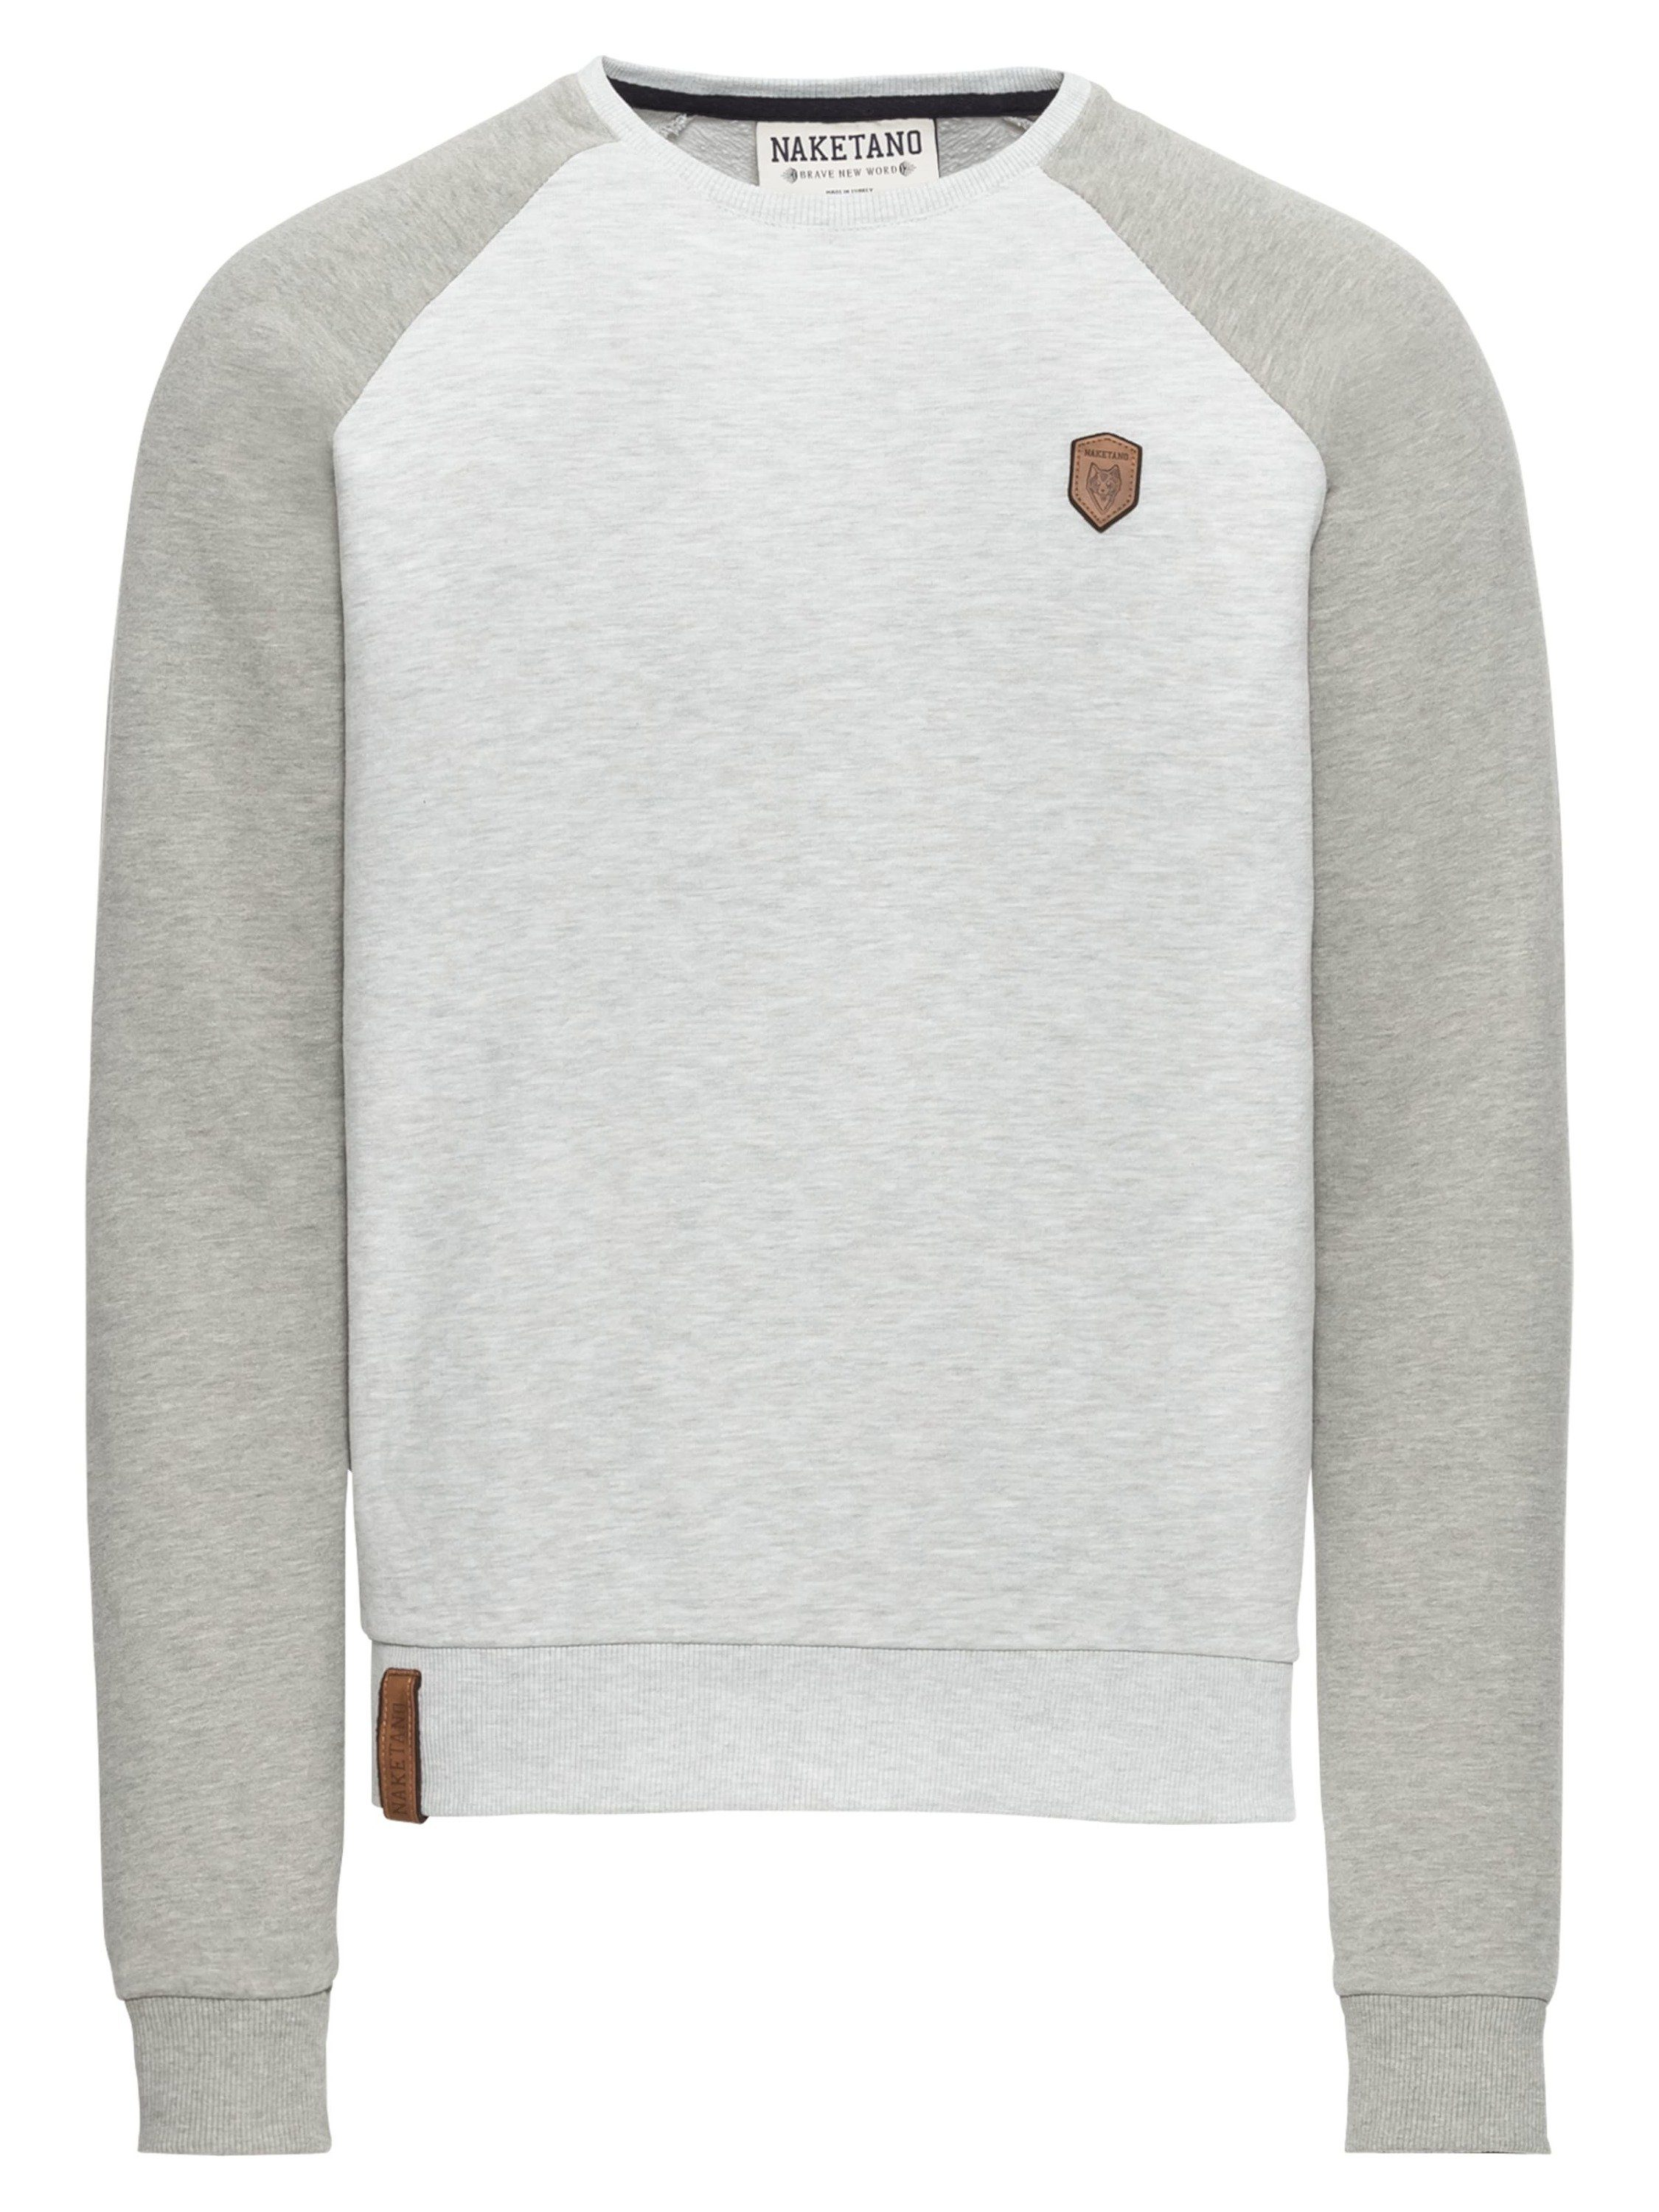 naketano Sweatshirt »Jordan Rules«, Regular Fit online kaufen | OTTO